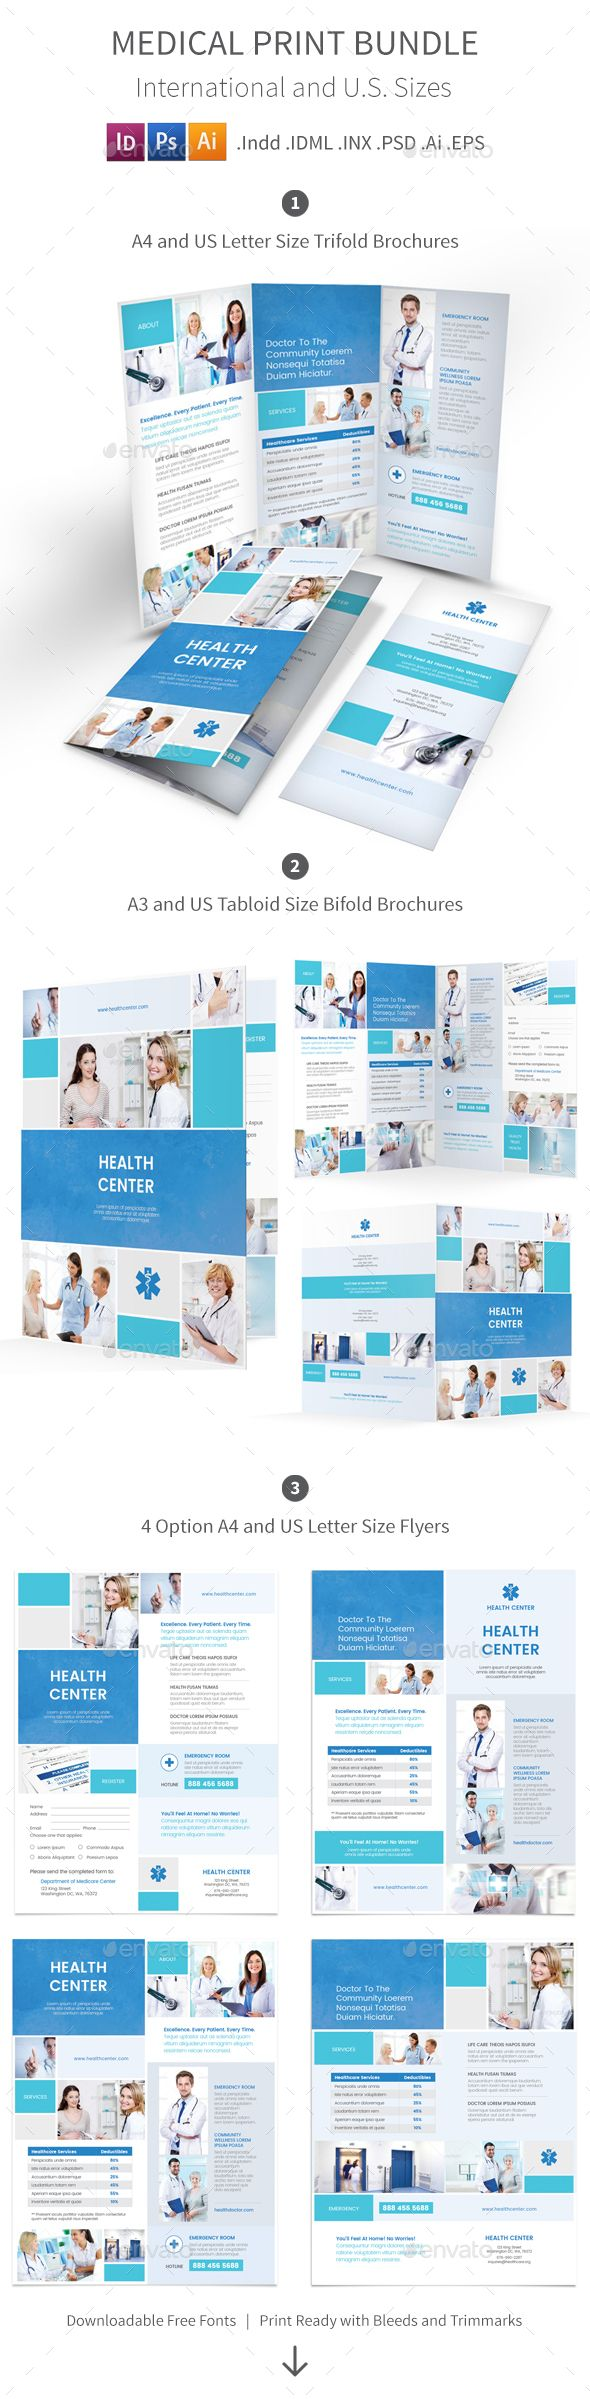 Medical Print Bundle - Informational Brochures for Medical practices